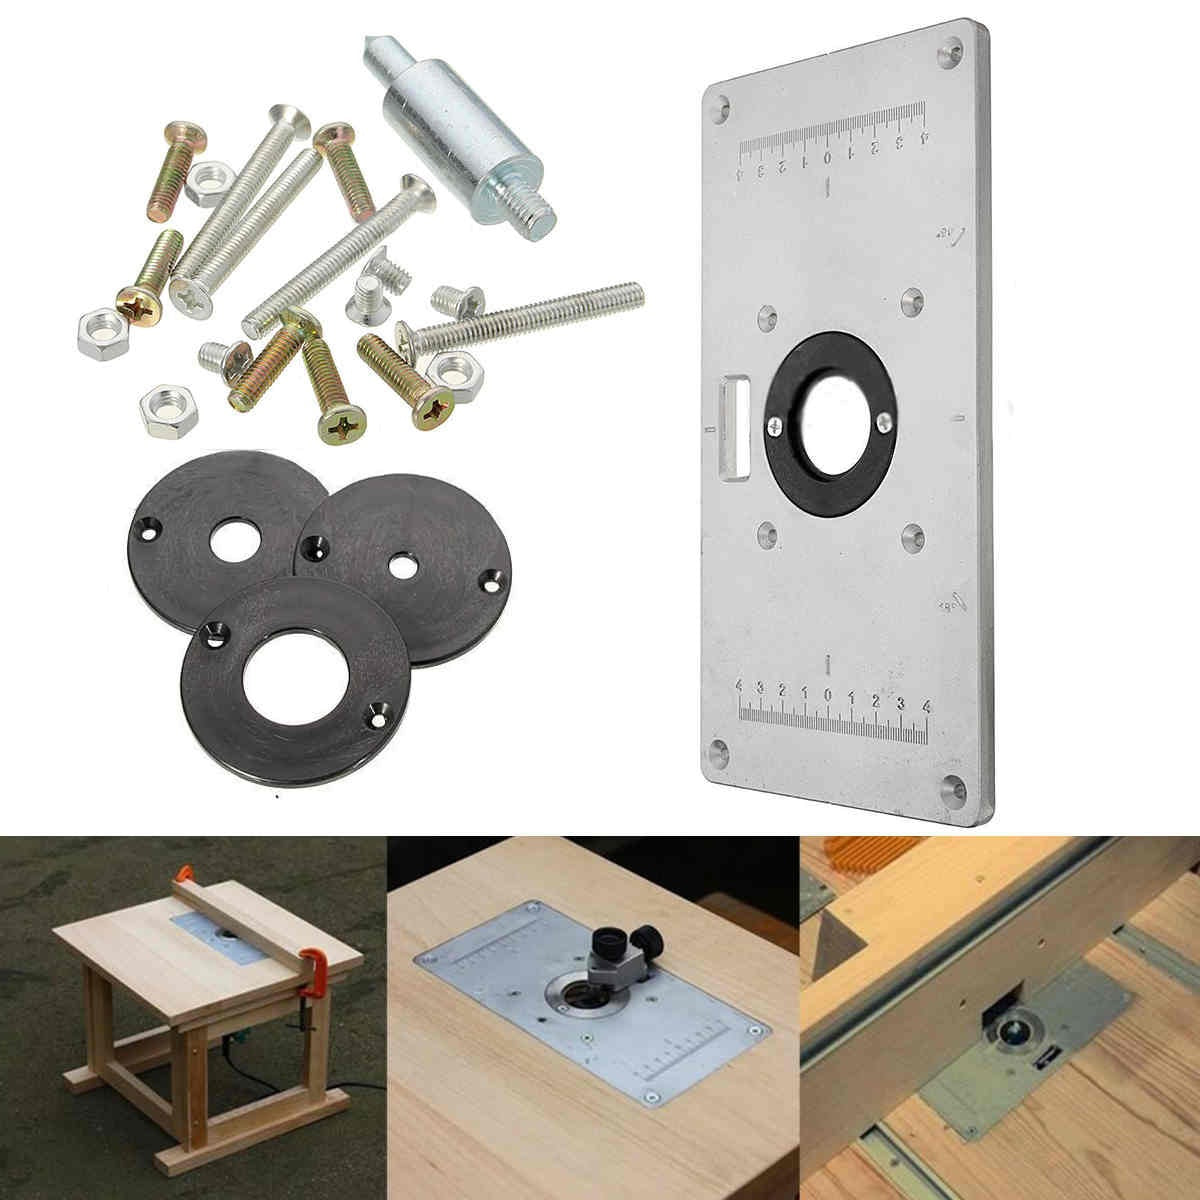 Aluminum metal router table insert plate insert rings diy for aluminum metal router table insert plate insert rings diy for woodworking sliver greentooth Gallery